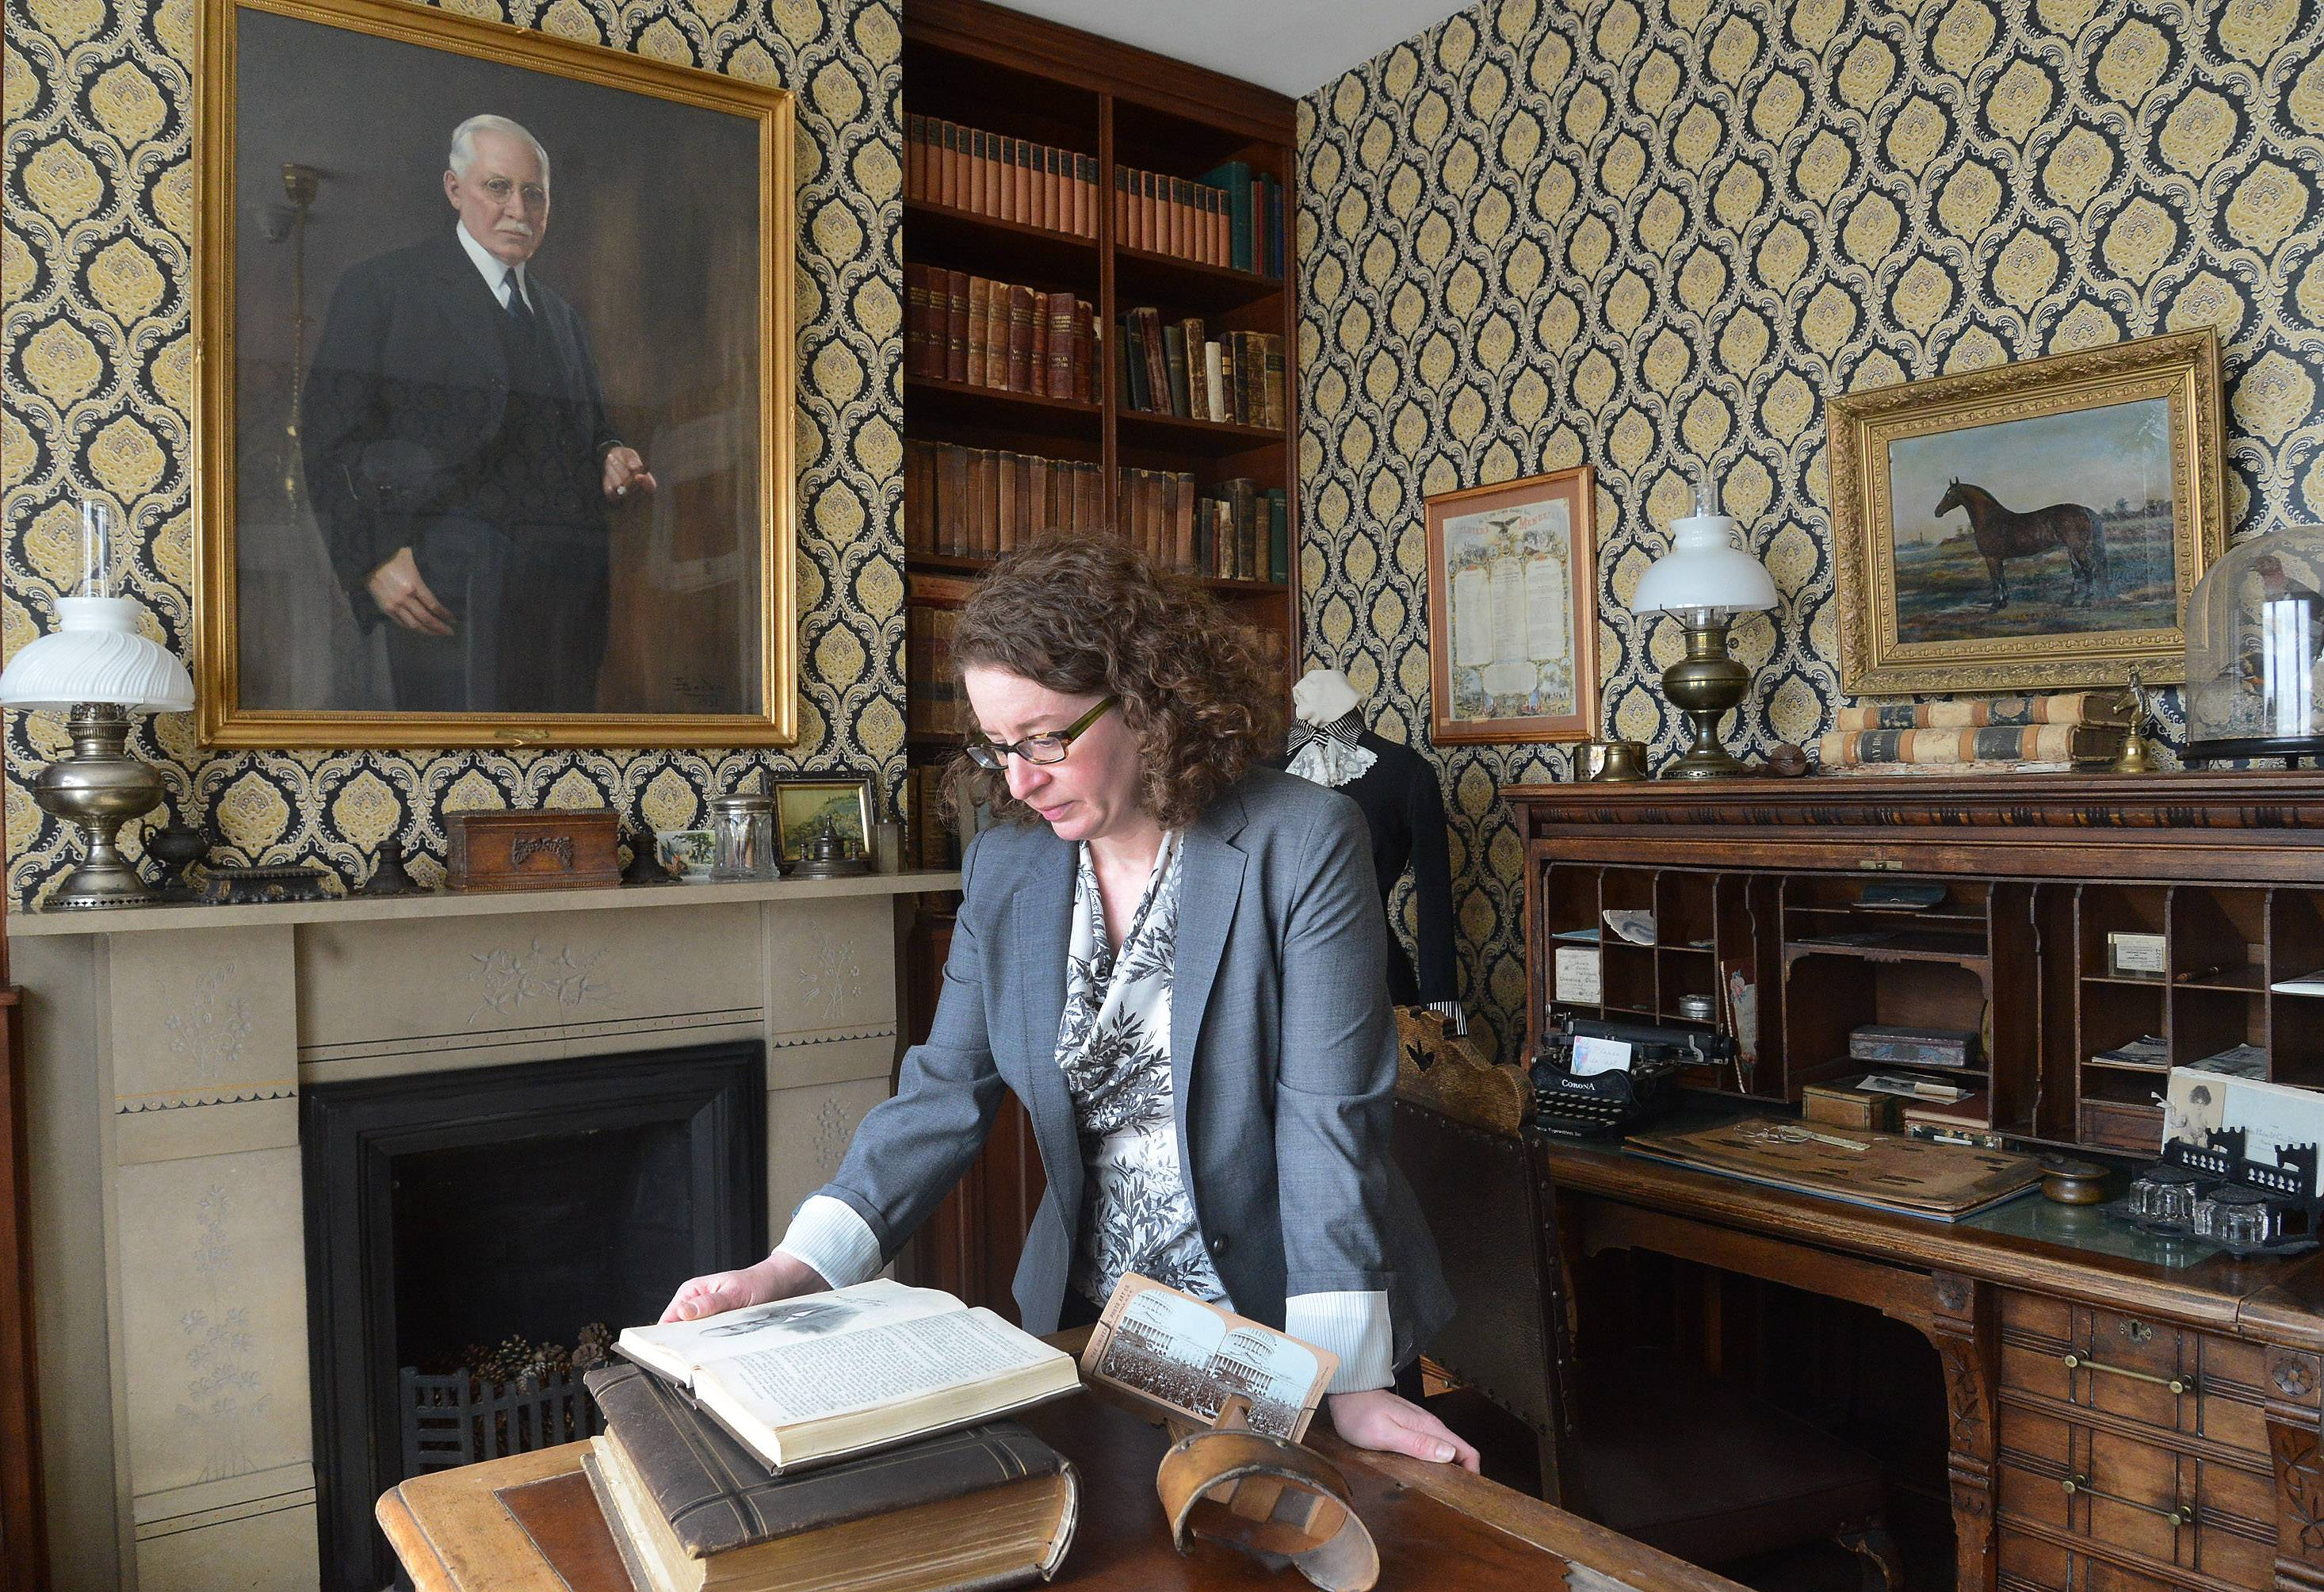 Jenny Barry, local history librarian at the Cook Memorial Library, looks over some historical books inside the Ansel B. Cook House in Cook Park.